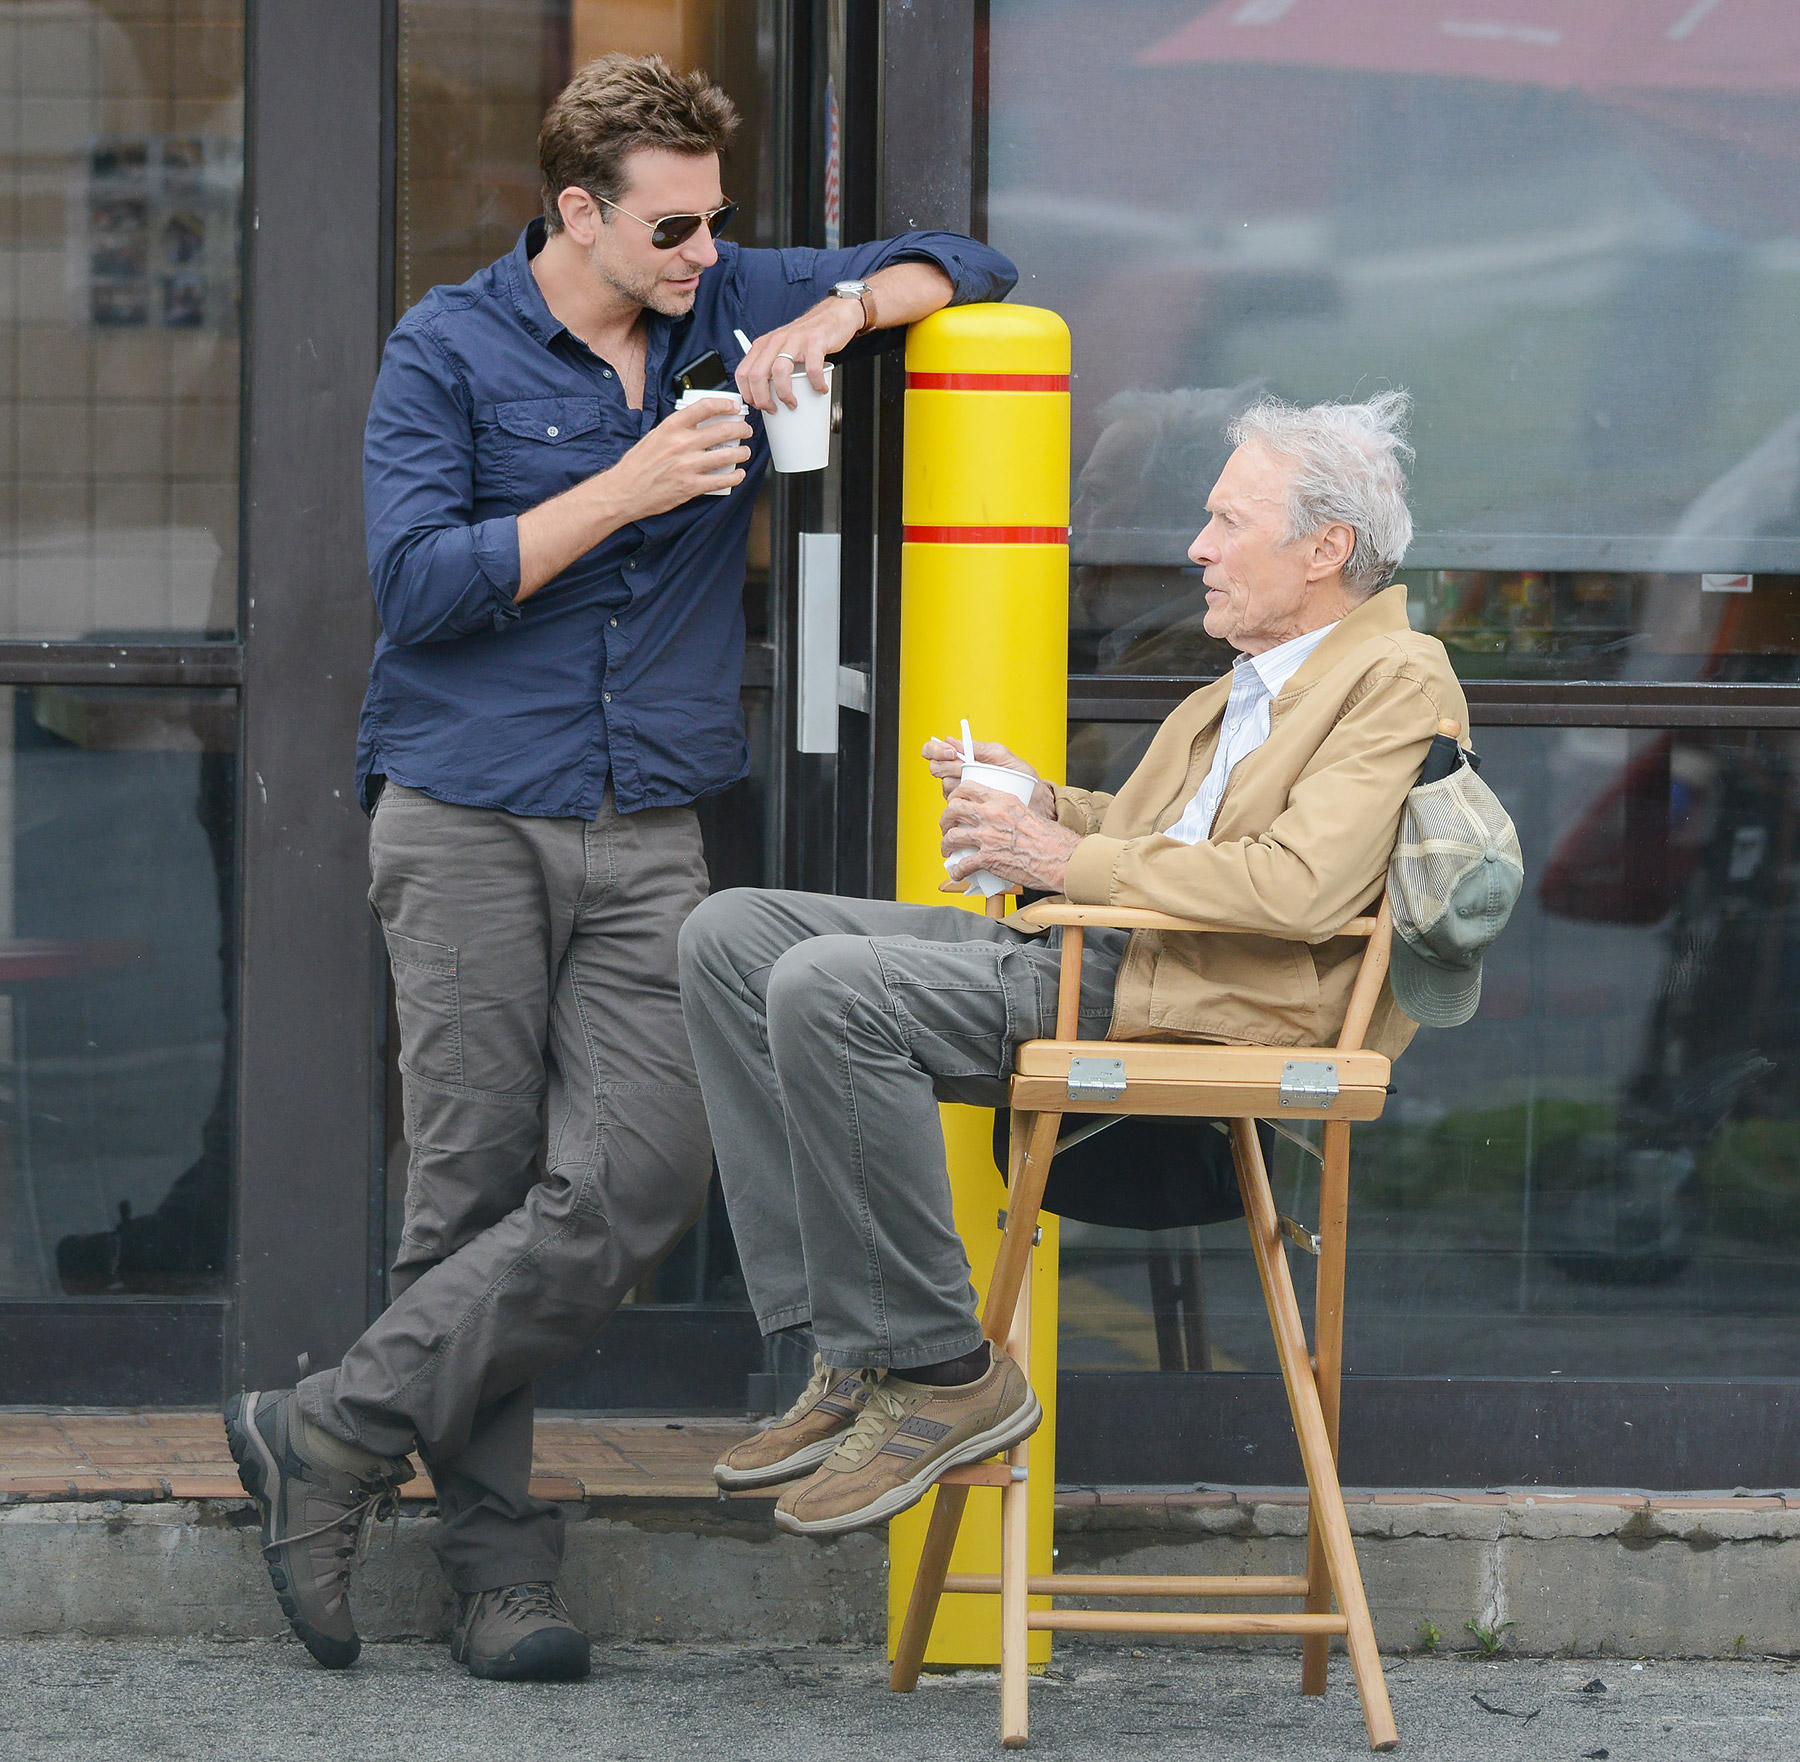 EXCLUSIVE: Bradley Cooper and Clint Eastwood take ice cream break together while filming The Mule